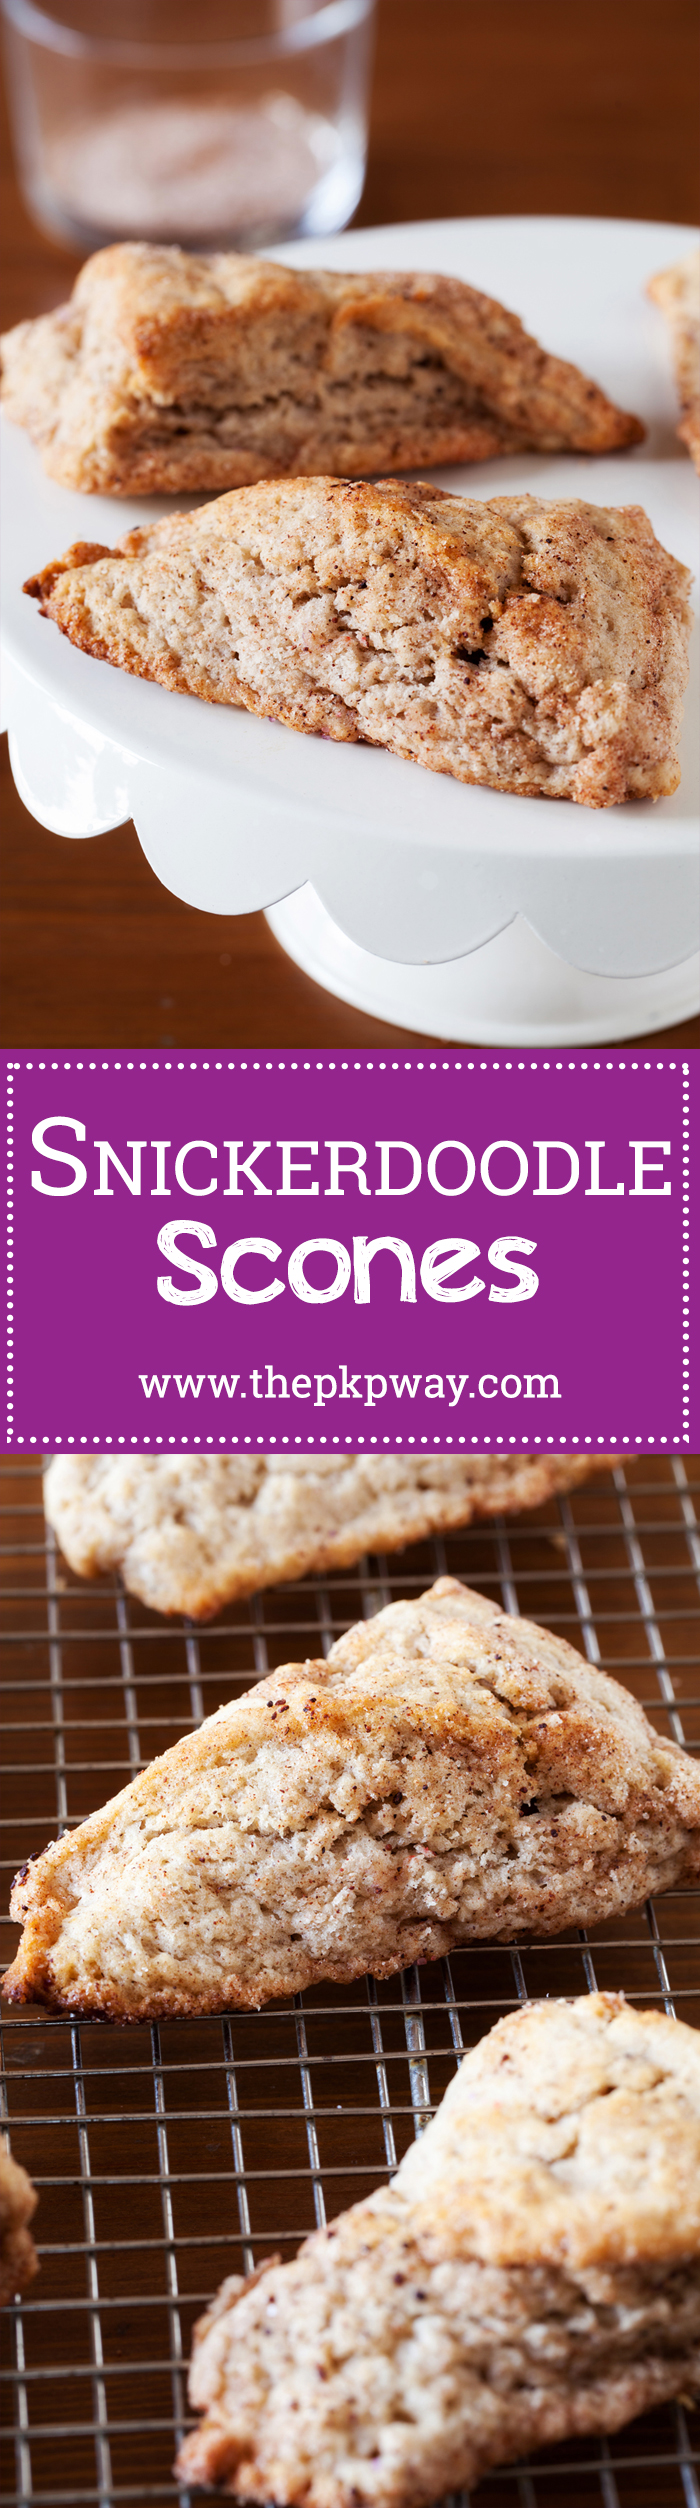 Snickerdoodle Scones - A Year Round Treat for Snickerdoodle Lovers!